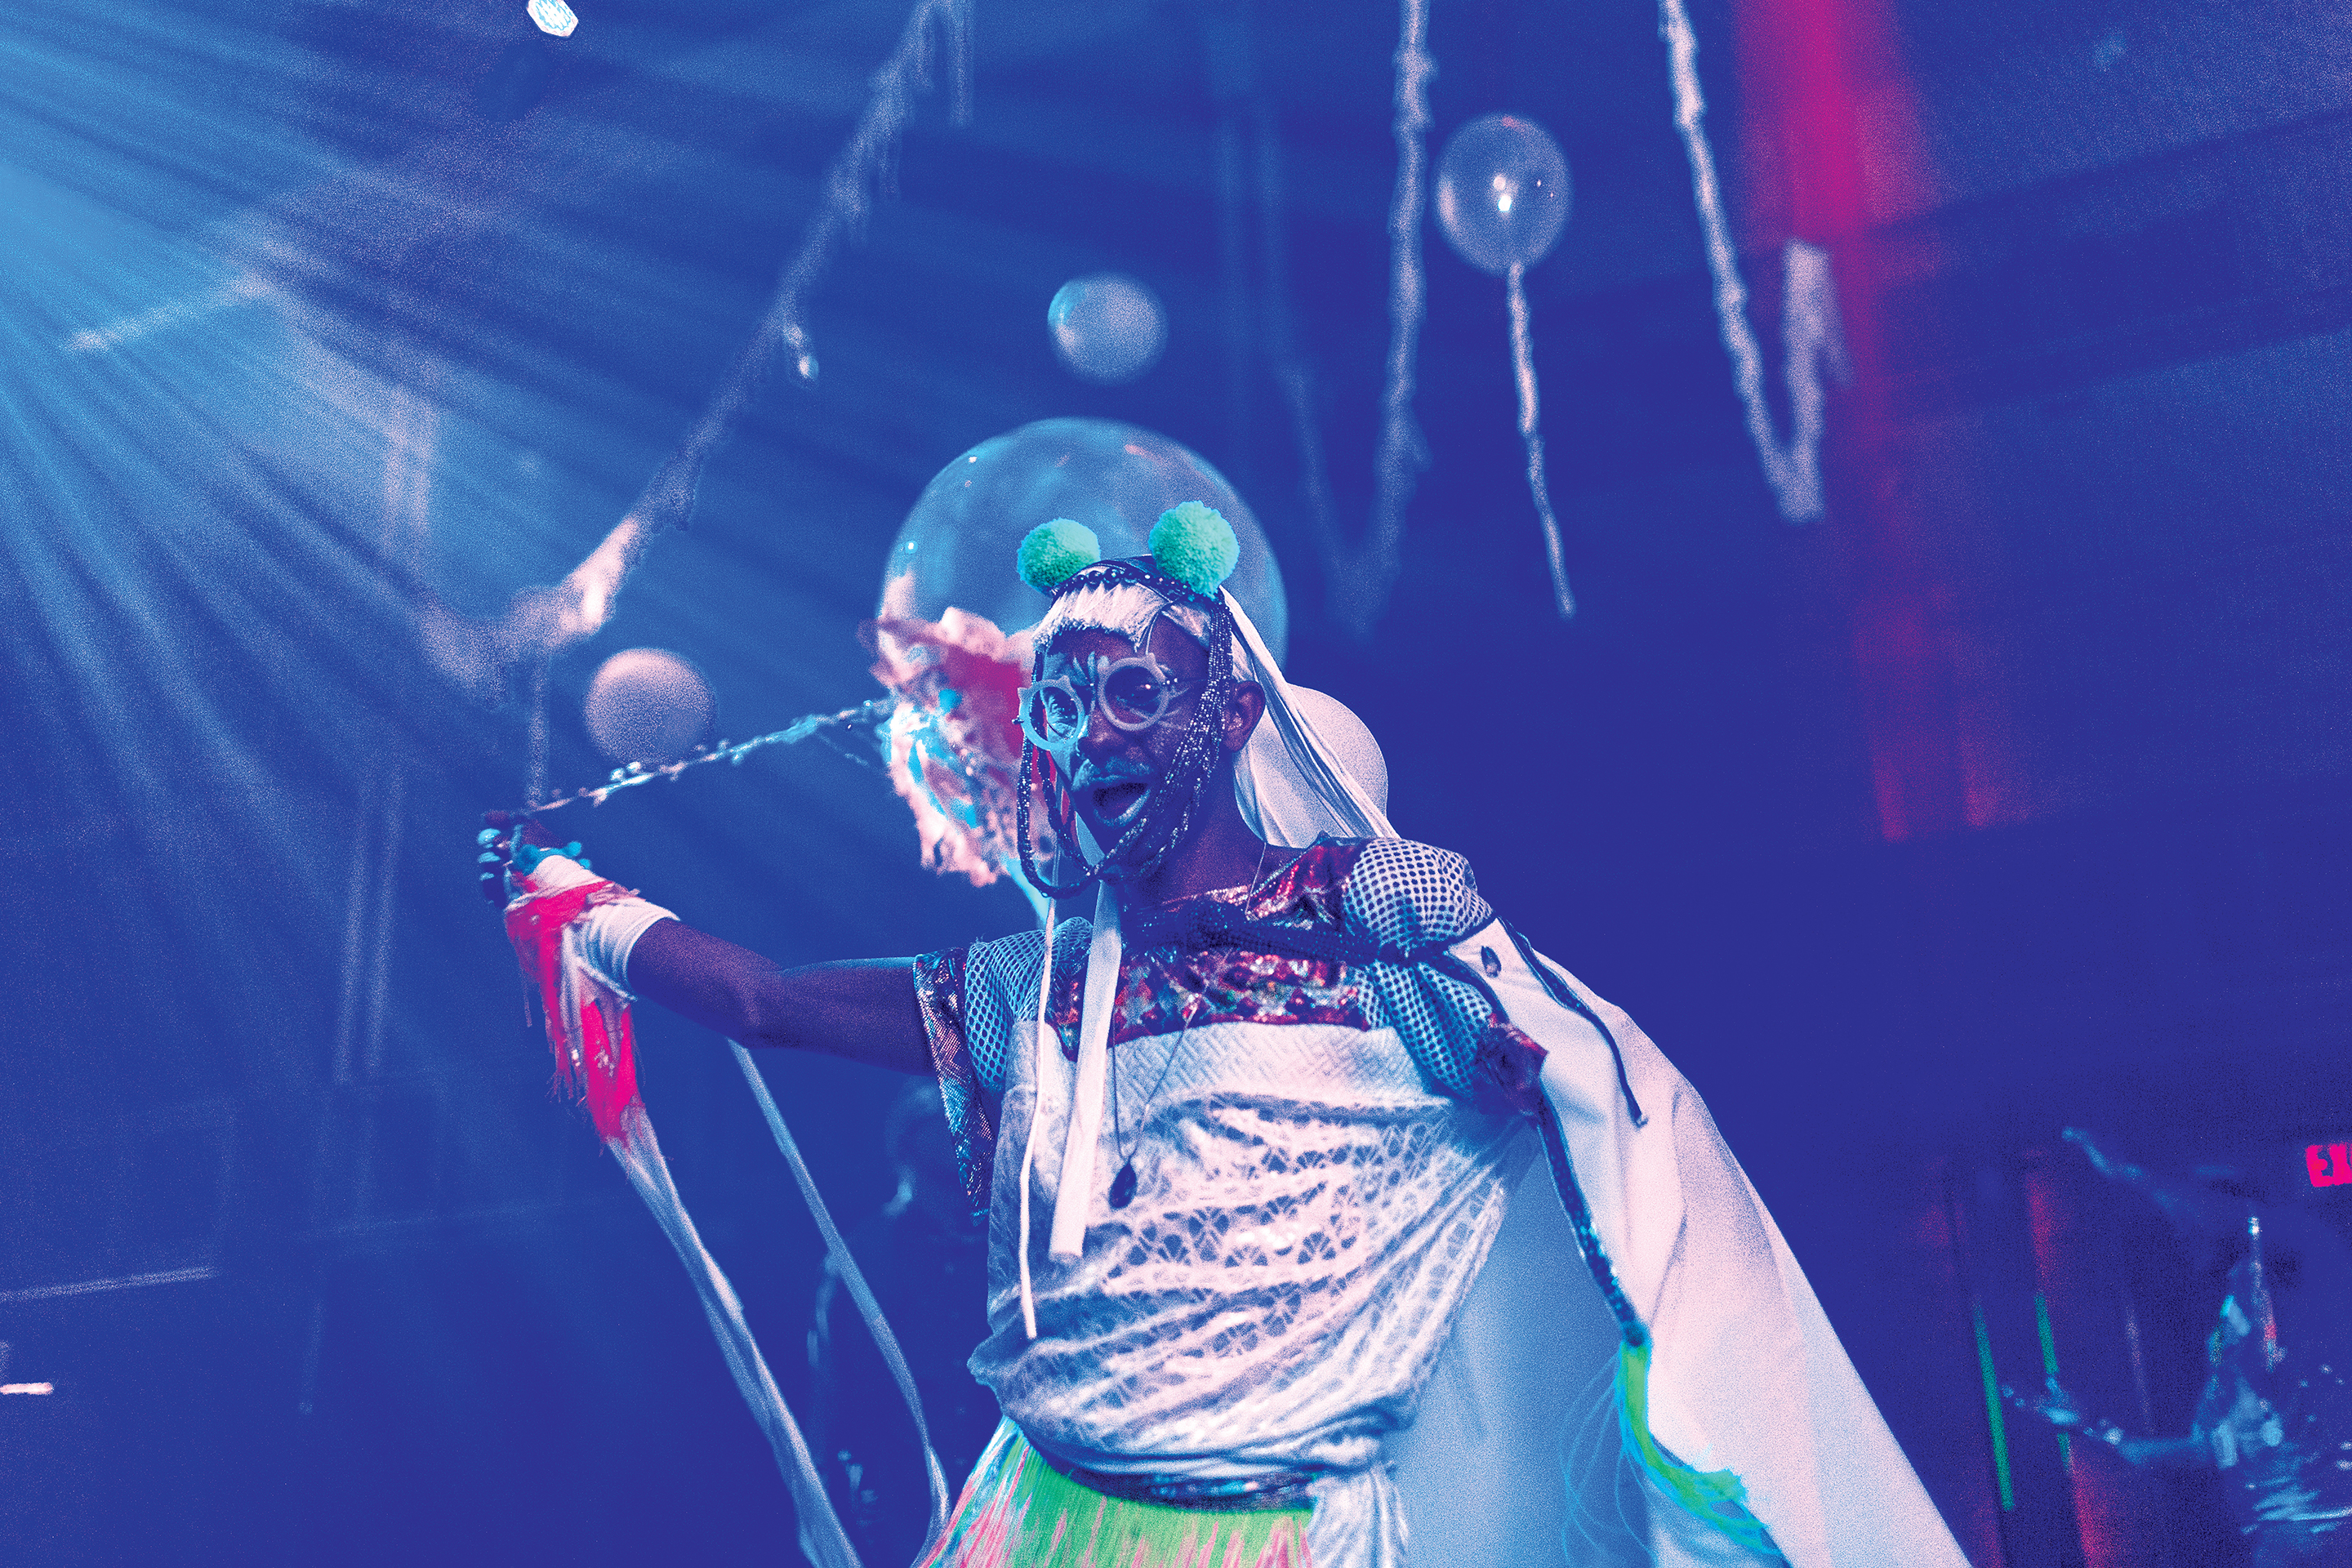 Man in costume performing on stage